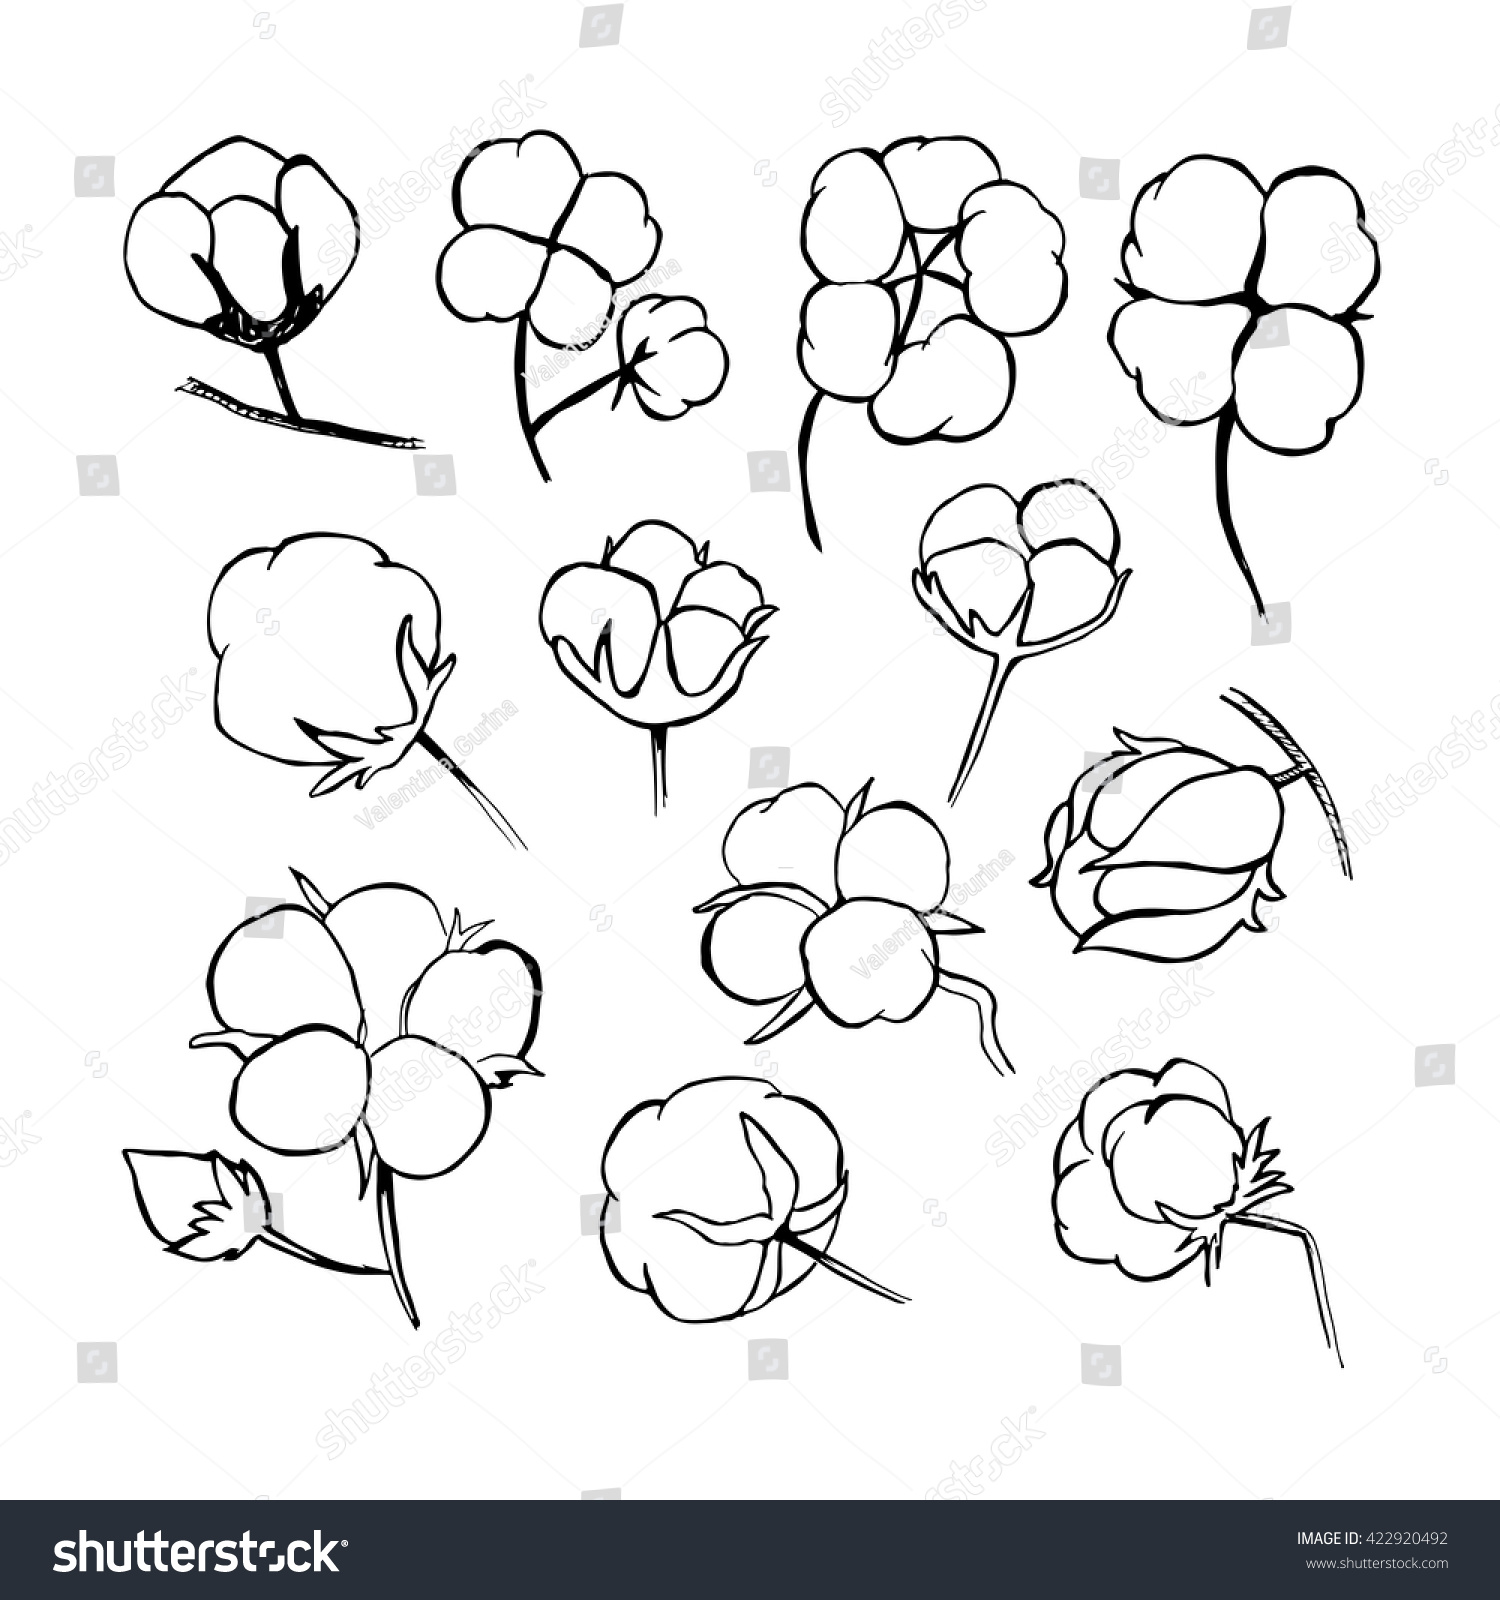 Top 28 How To Draw A Cotton Plant Step By Step Vector